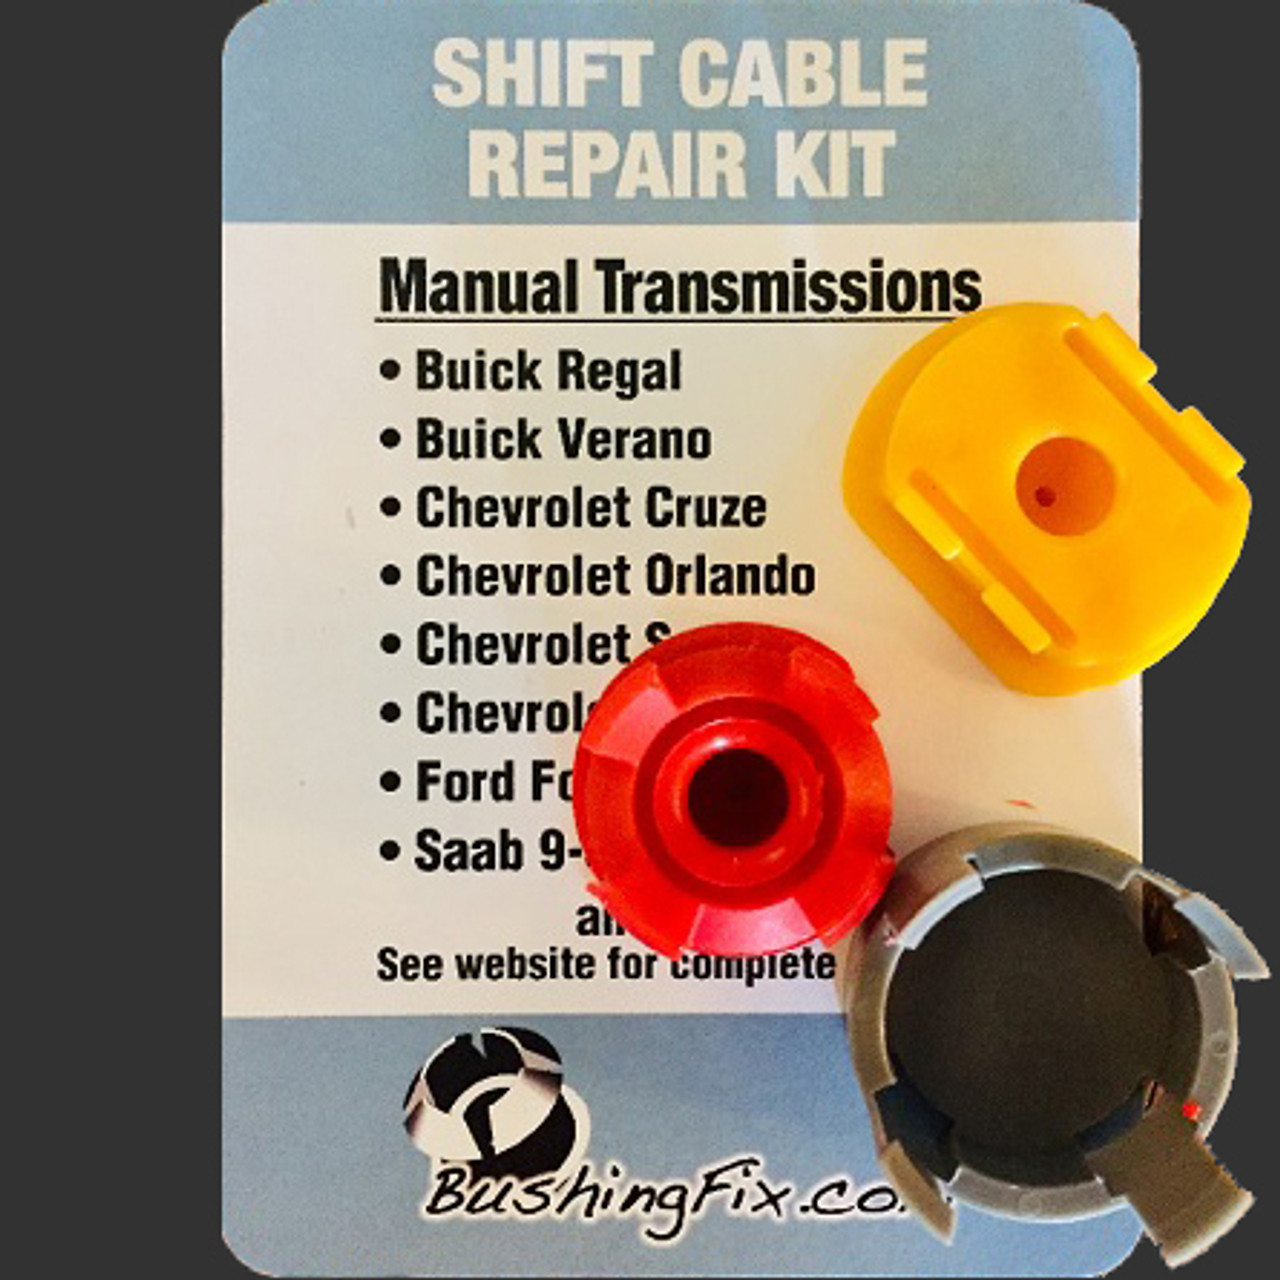 Chevrolet Spark manual transmission shift cable repair includes easy installation replacement bushing one for each of the different style of cable end shape round or oblong.